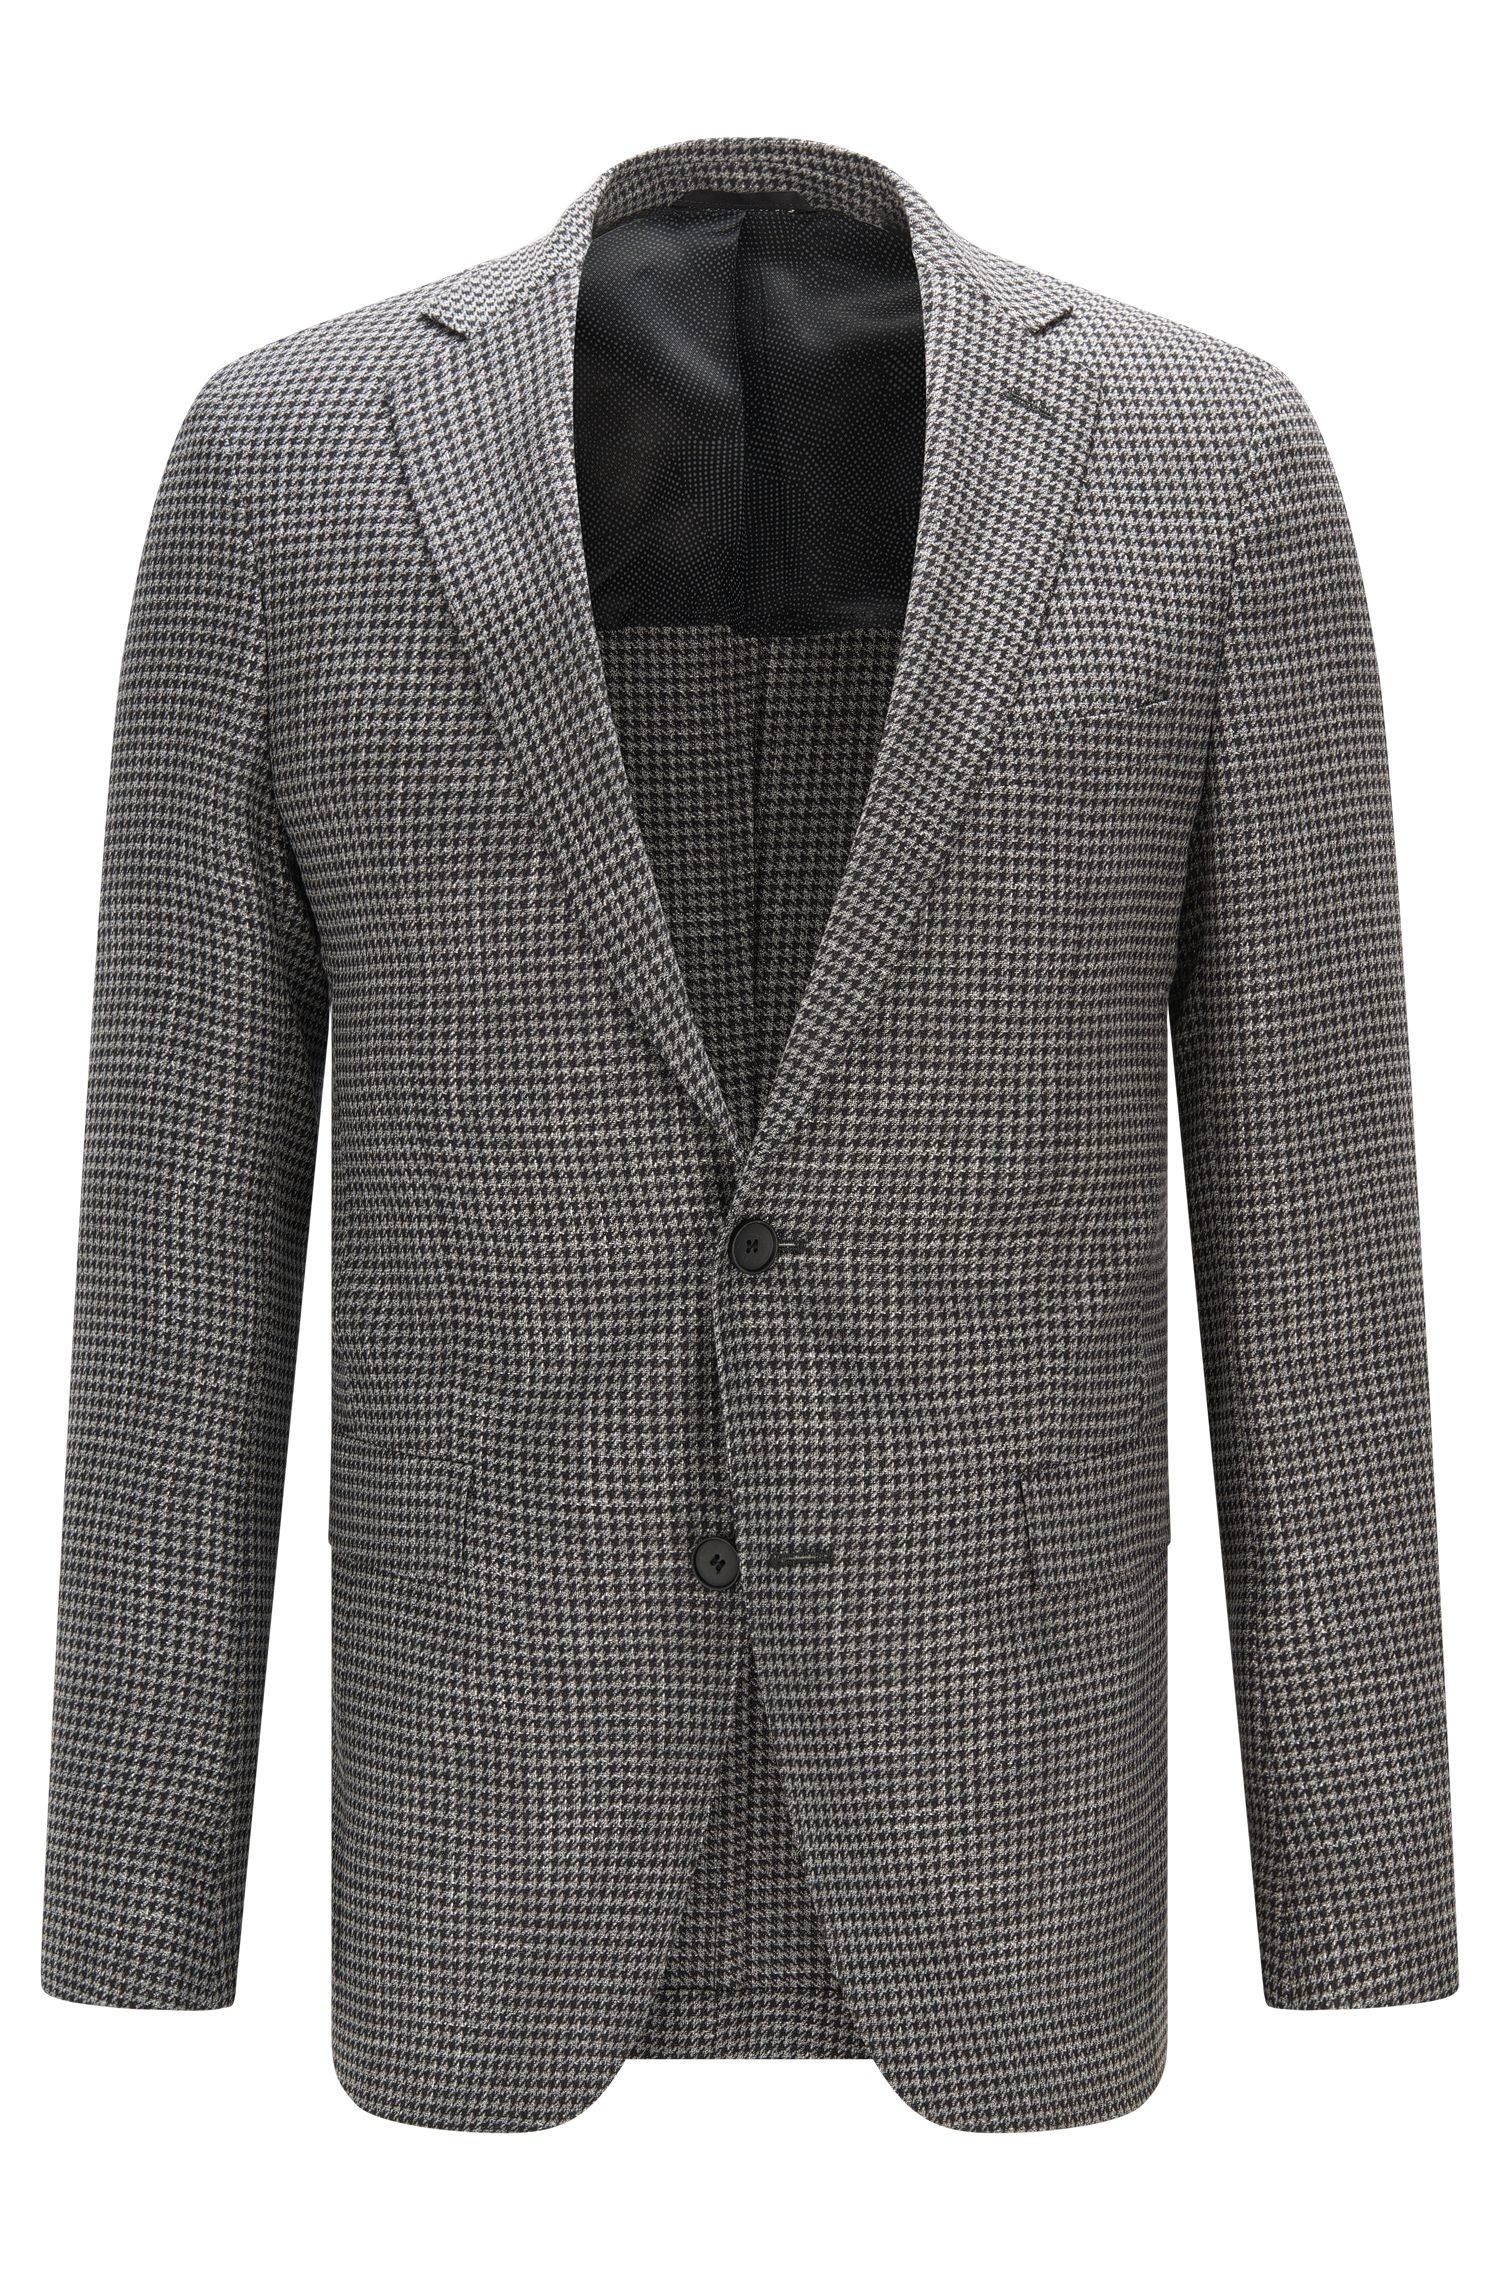 'Roan' | Extra-Slim Fit, Houndstooth Stretch Virgin Wool Sport Coat